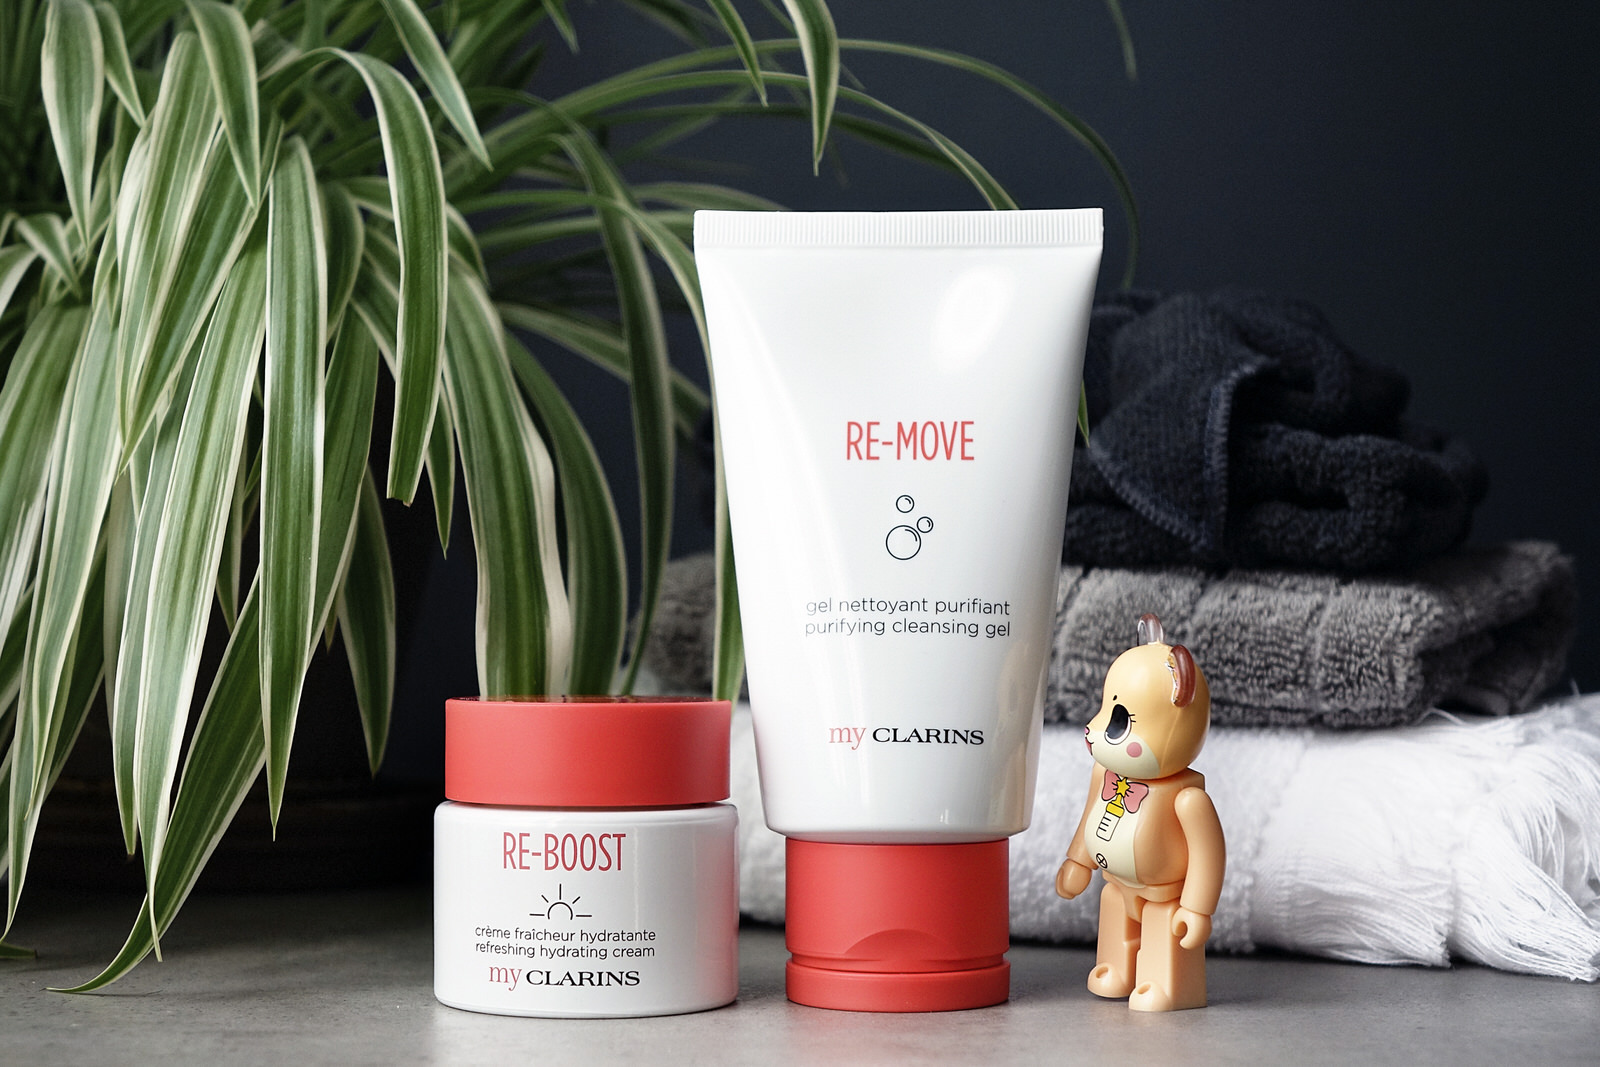 La nouvelle gamme My Clarins re-move et re-boost